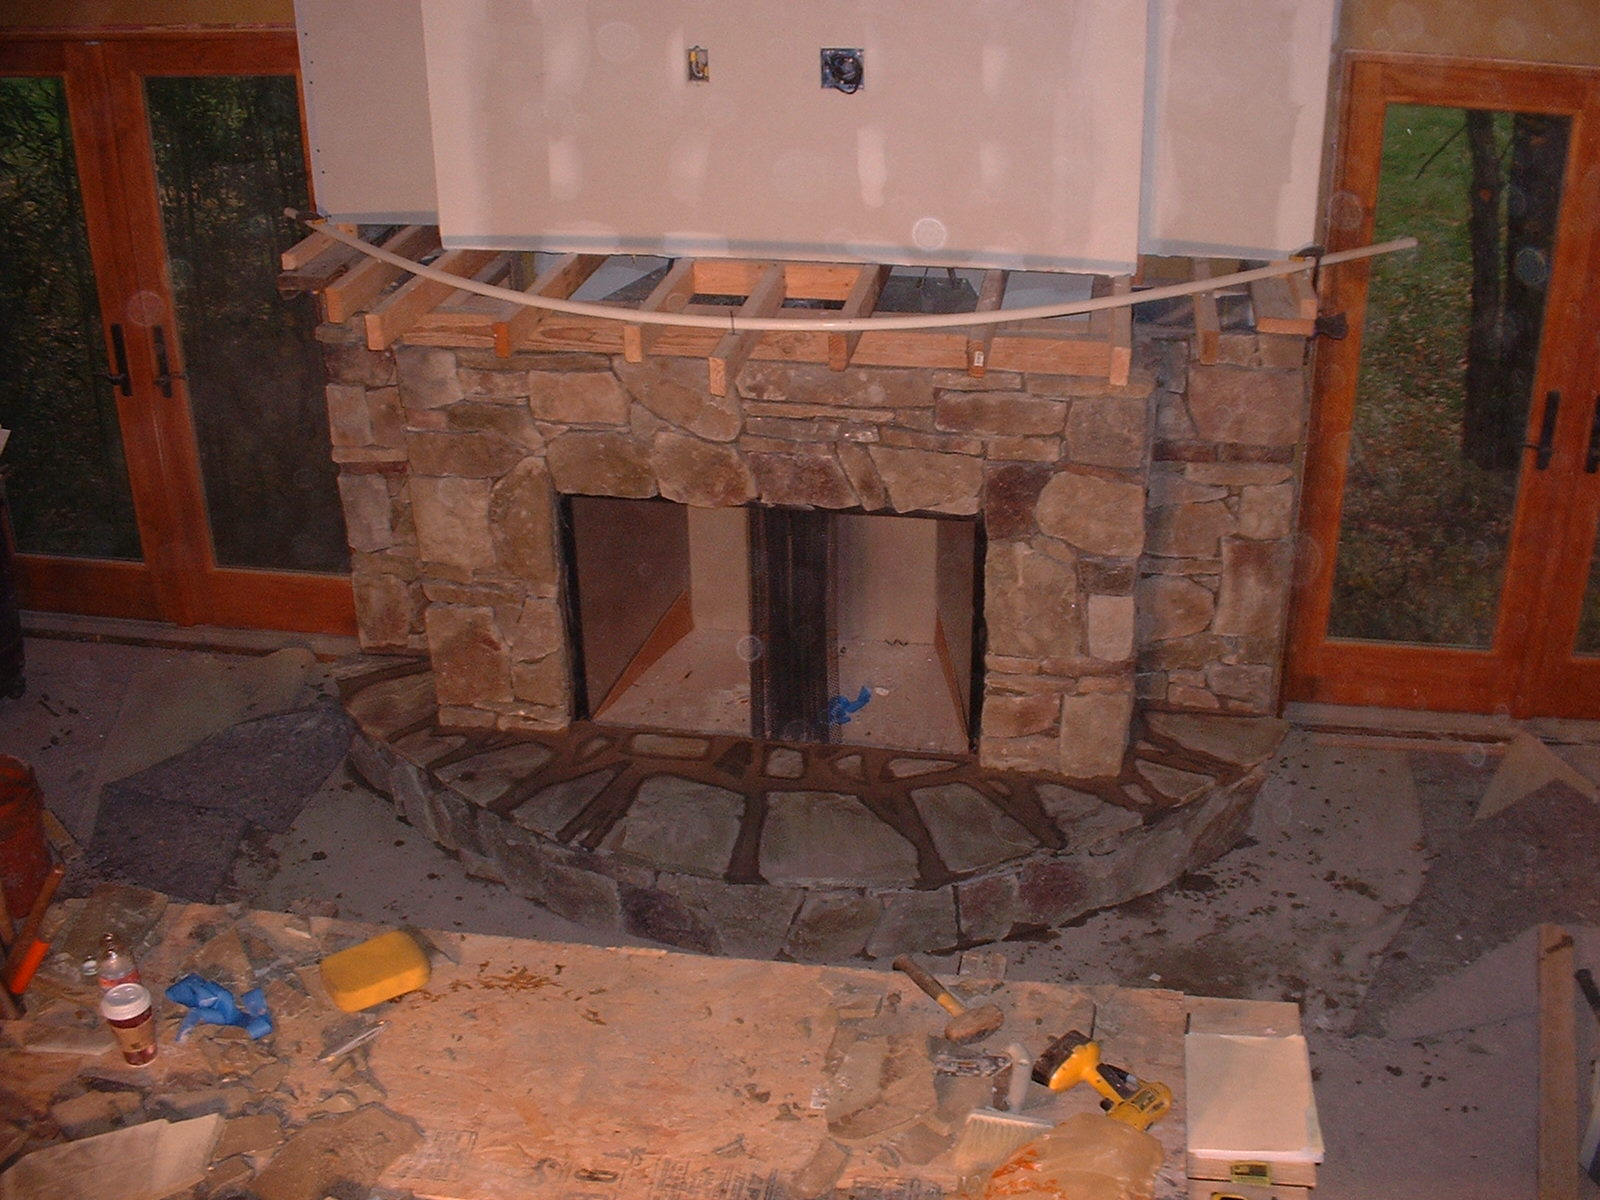 The top of the hearth is done with a natural stone.